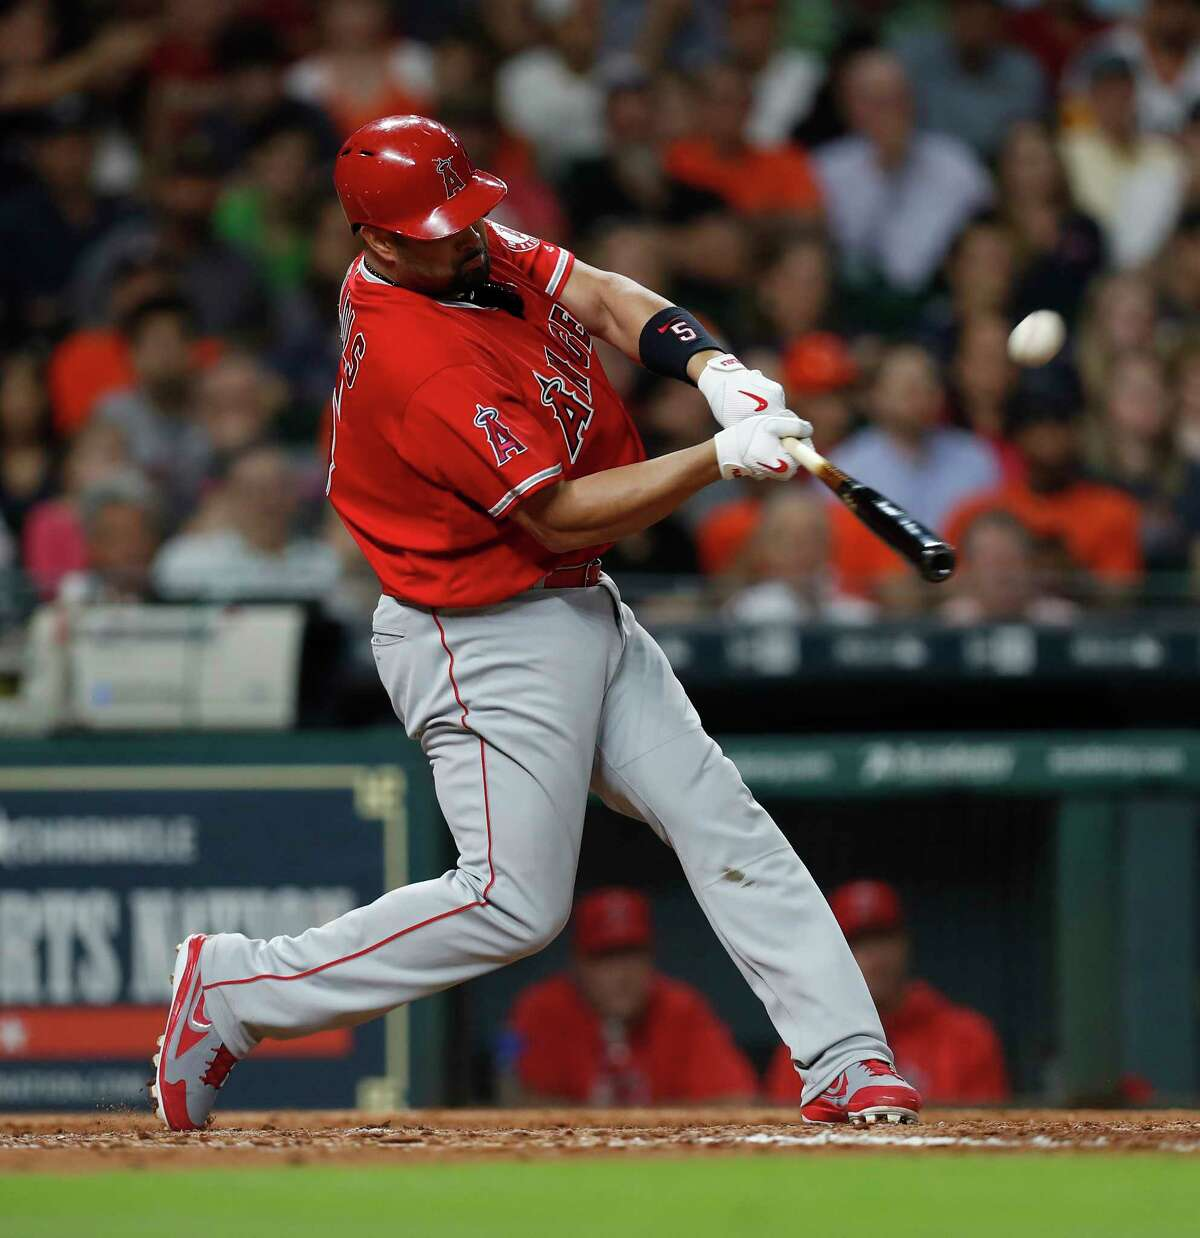 Los Angeles Angels designated hitter Albert Pujols (5) hits a three-run home run of of Astros starting pitcher Joe Musgrove during the fifth inning of an MLB baseball game at Minute Maid Park, Tuesday, April 18, 2017, in Houston.